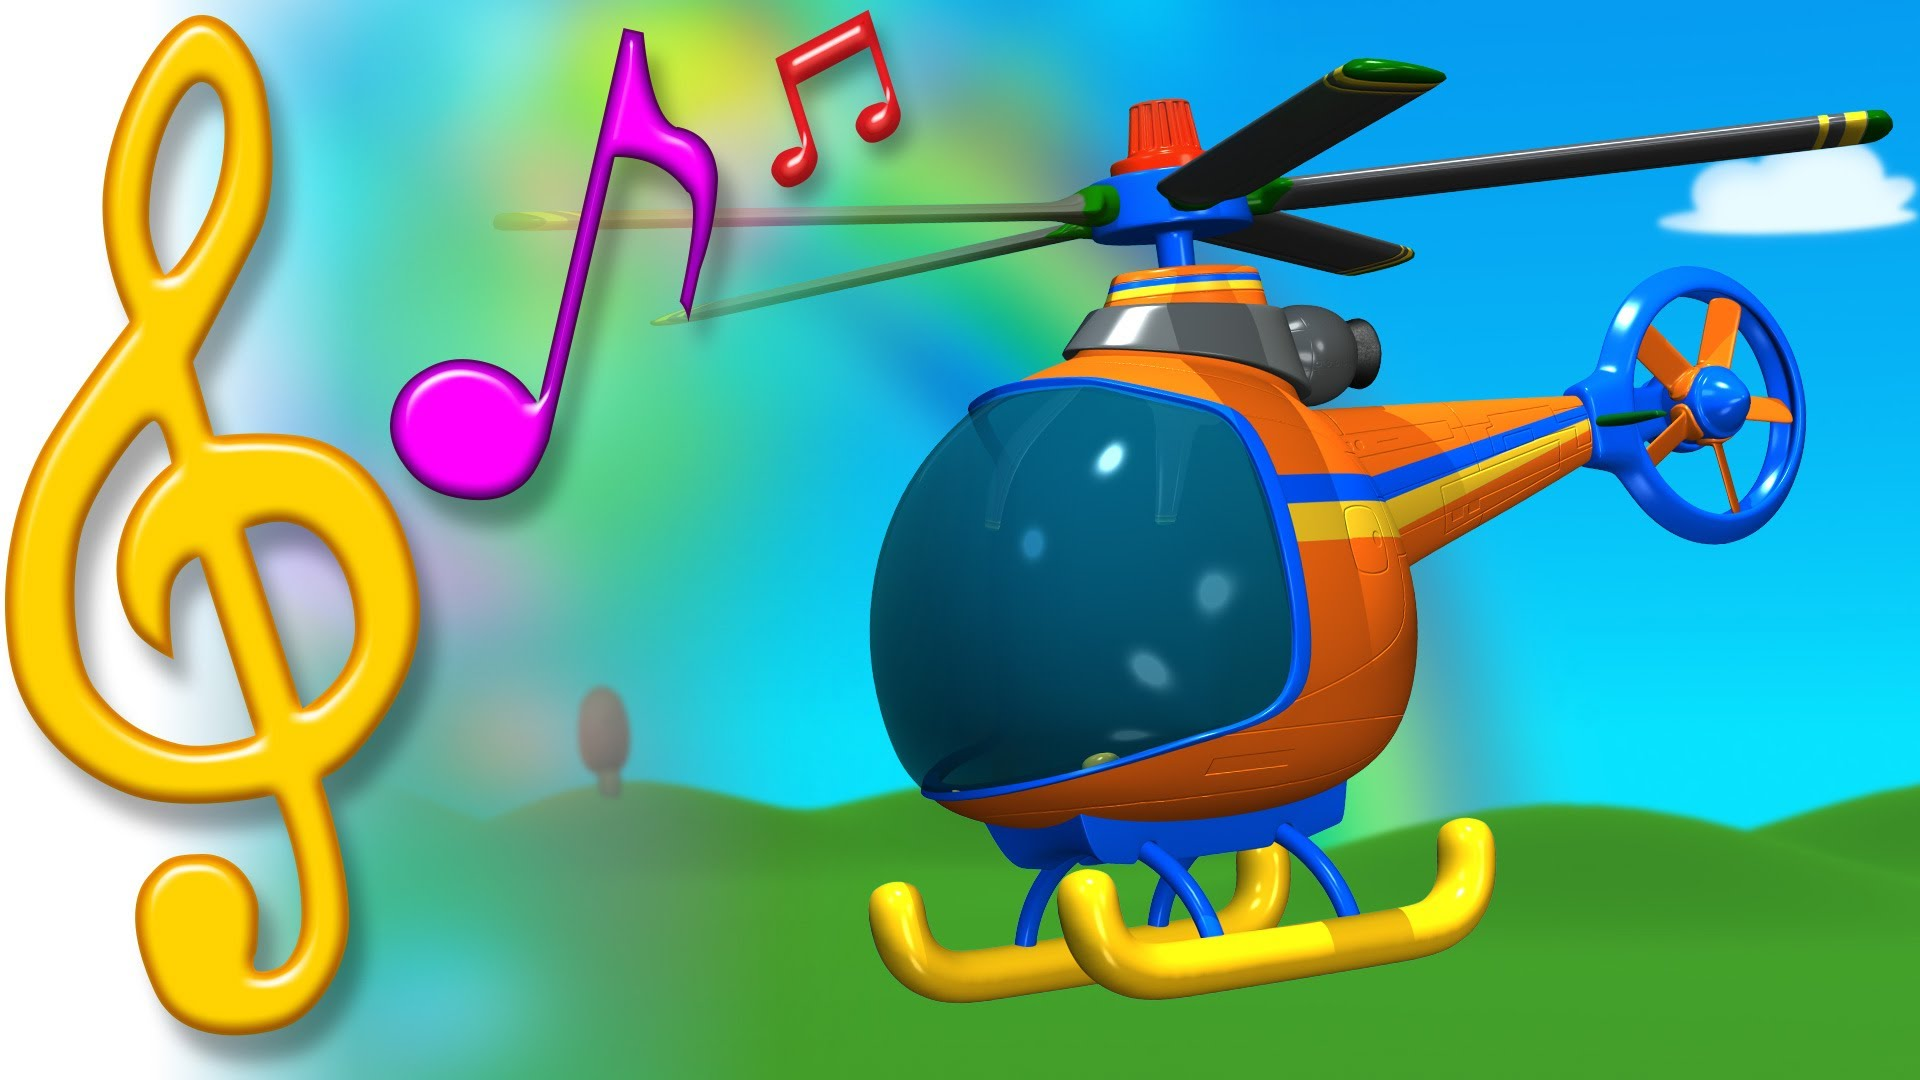 fireman sam helicopter game with Helicopter Song With Lyrics Tutitu Toys Songs For Children on 2011 09 01 archive further La Relacion Entre Profesores Y Padres besides Uk Importfireman Sam Hoses Ladders Game also Funny 20fishing as well Helicopter Song With Lyrics Tutitu Toys Songs For Children.